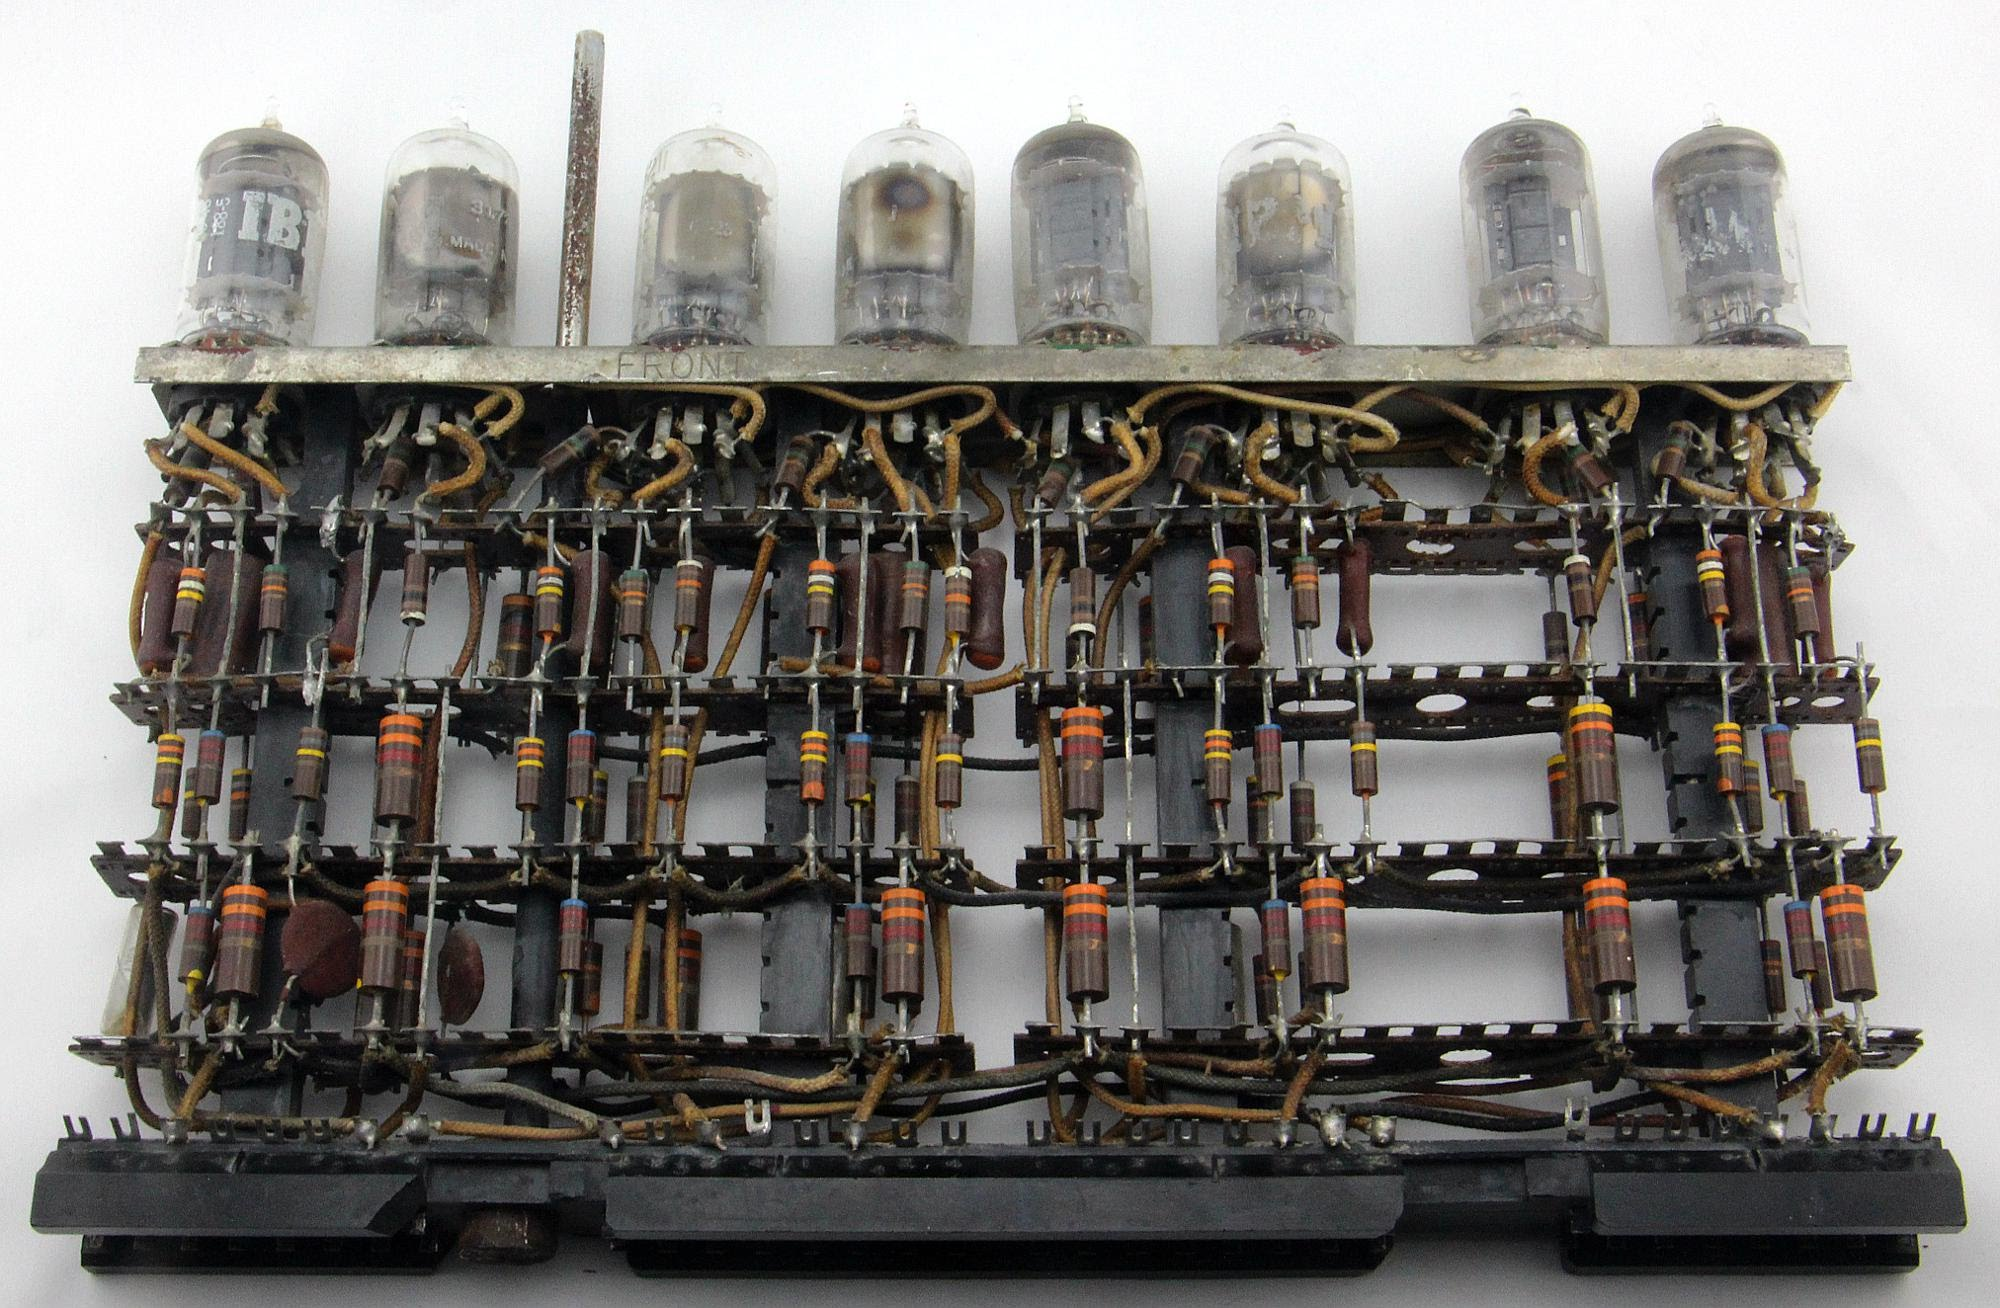 Ken Shirriffs Blog January 2018 Electronic Circuits 8085 Projects Archive Timer This Tube Module From An Ibm 705 Mainframe Computer Implemented Five Key Debouncing